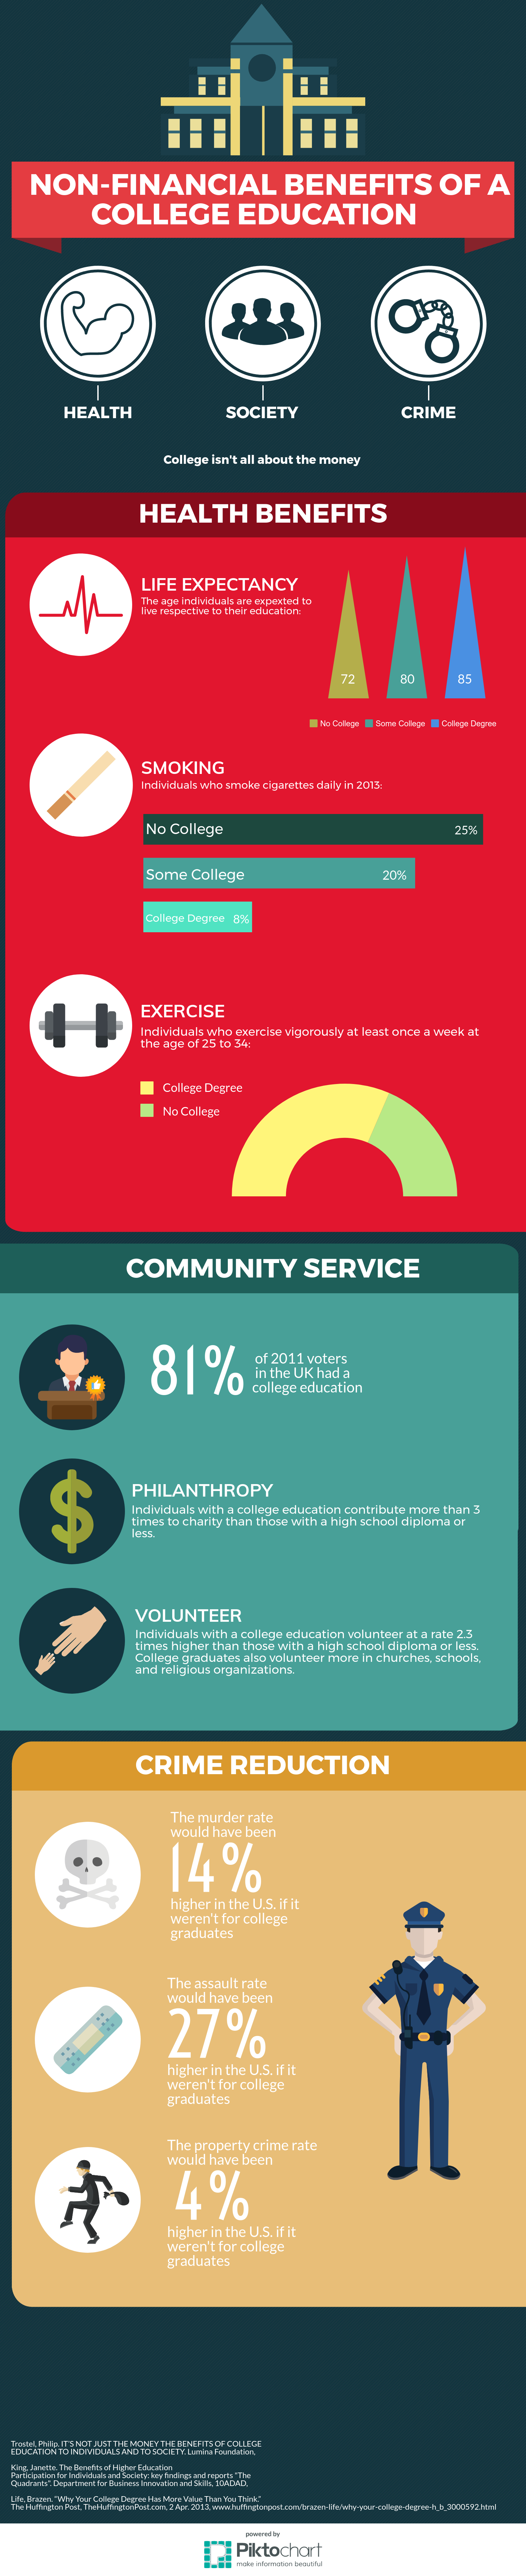 Non-financial Benefits of a College Education - infographic by Theo Kobza